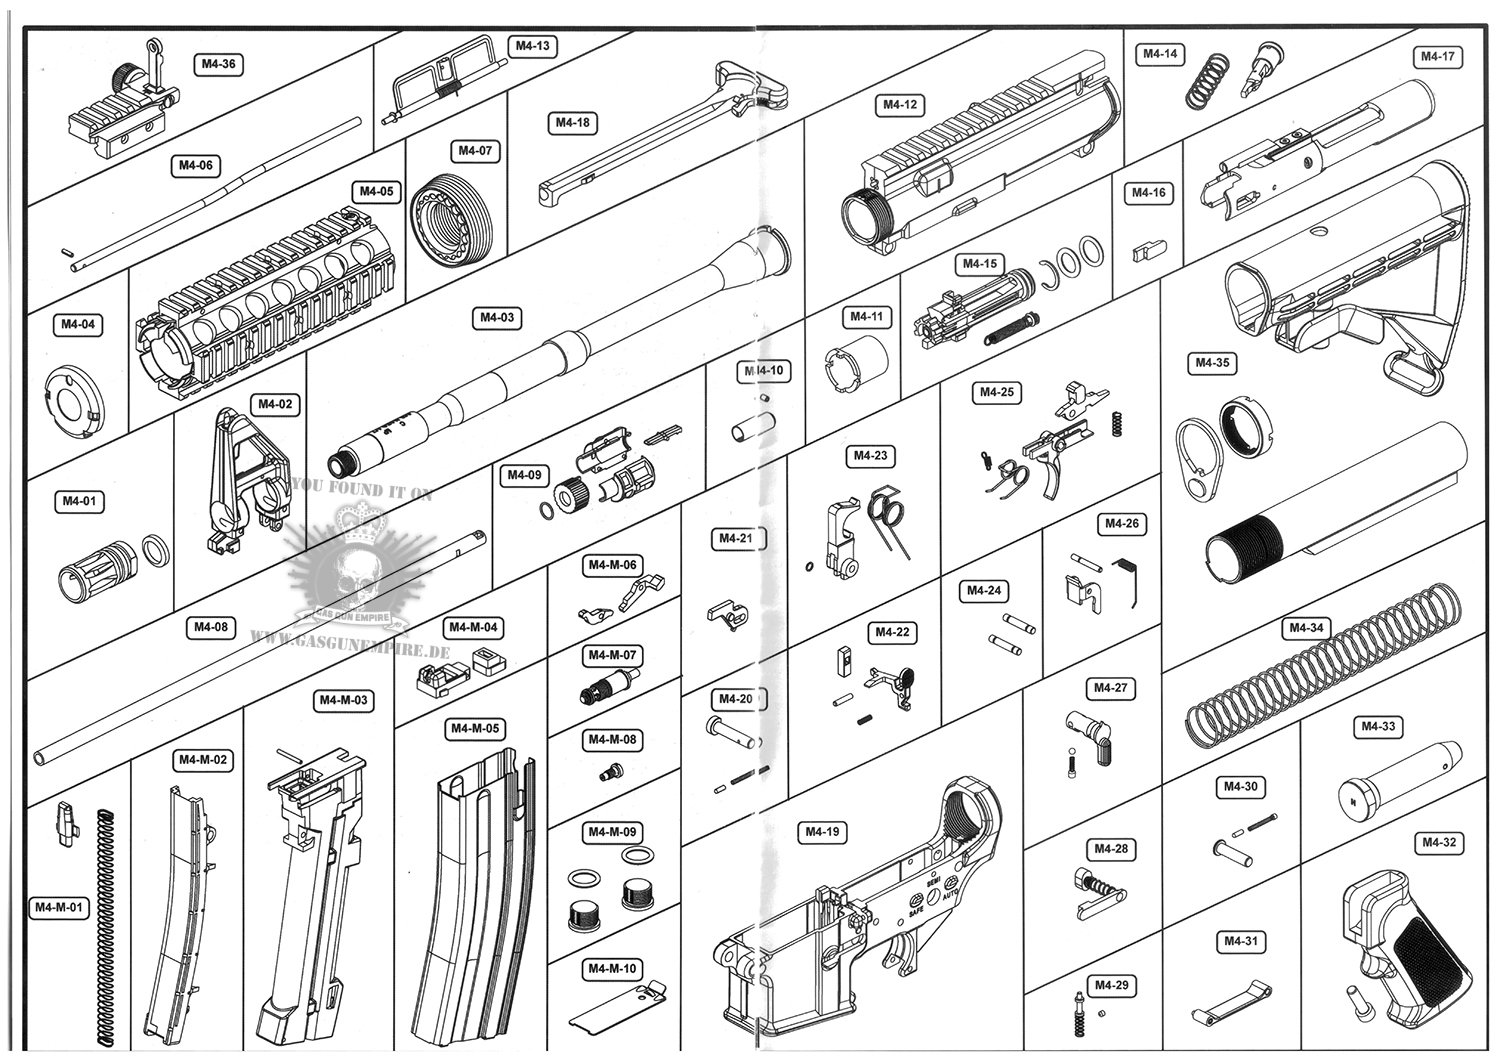 M4 Airsoft Rifle Wiring Diagram Trusted Diagrams Schematic Carbine Tactical Ghk Product